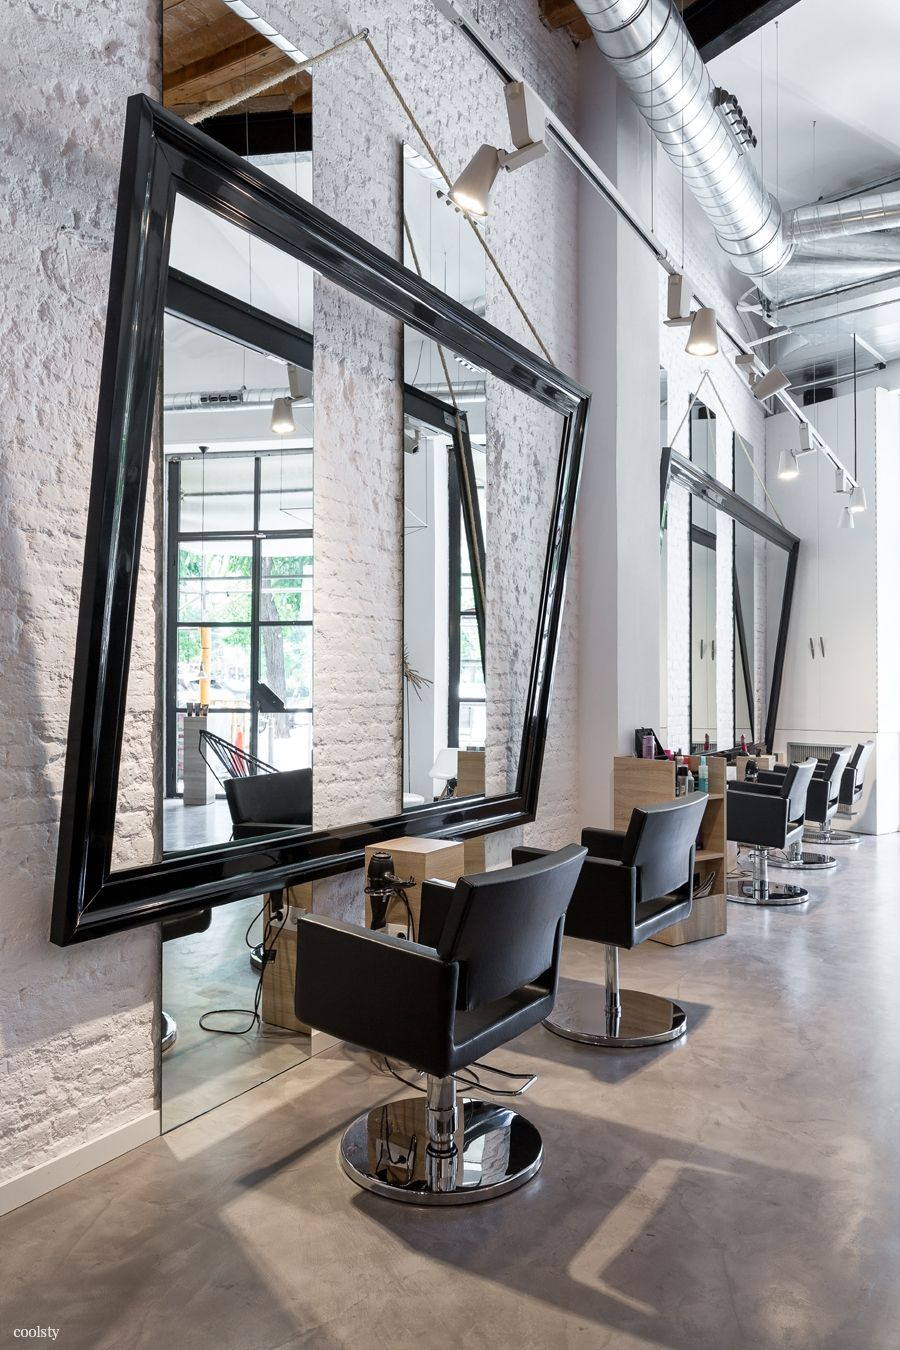 Home Salon Rennes Dream Salon Love The Large Mirror Foorni Pl Salon Fryzjerski